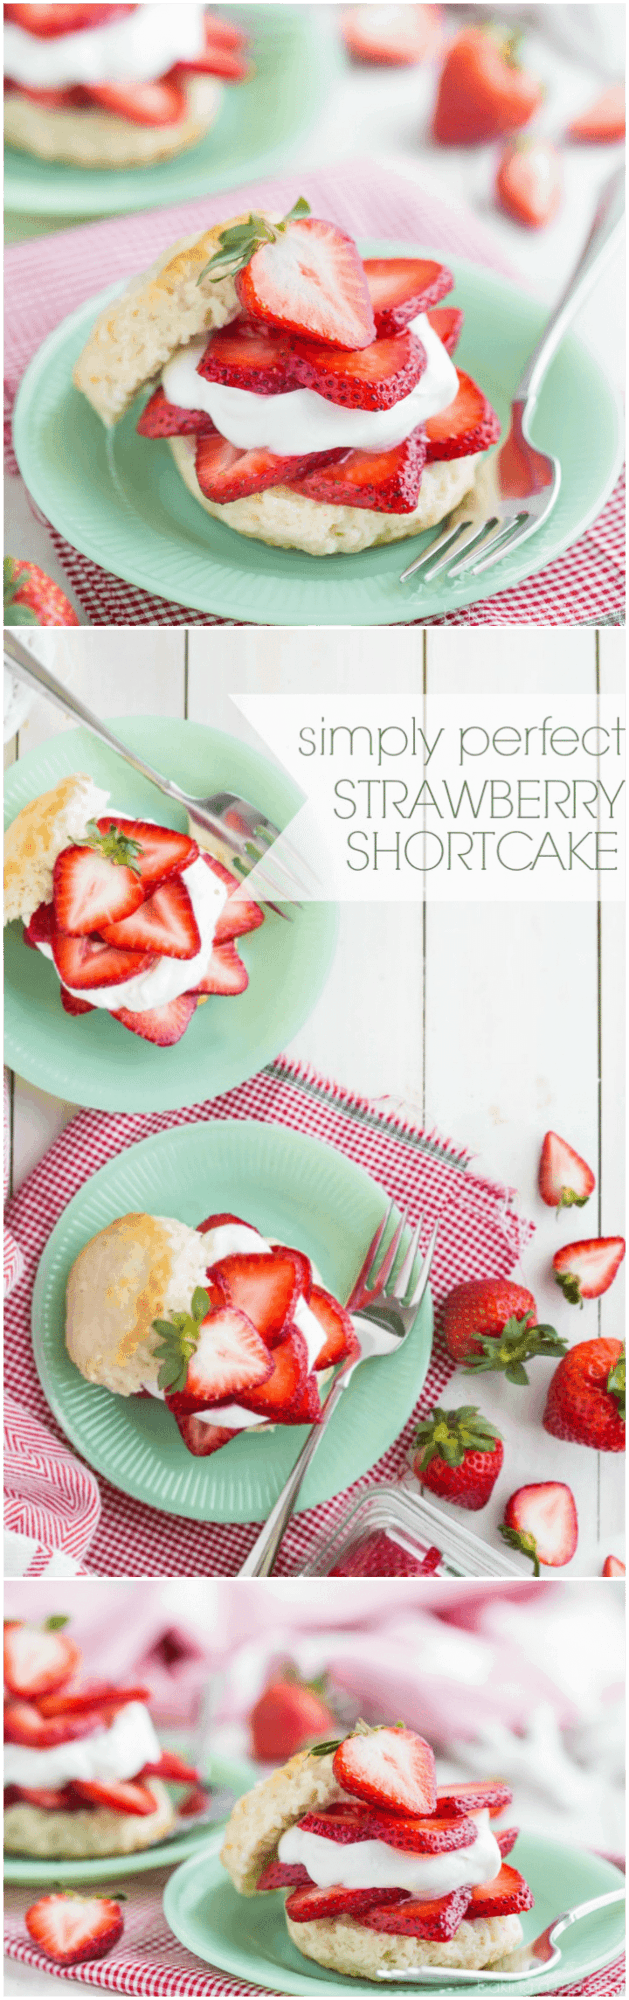 Simply Perfect Strawberry Shortcake- a summer staple! This version is made the old-fashioned way. #StrawberryShortcakeDay #finestberries @DriscollsBerry